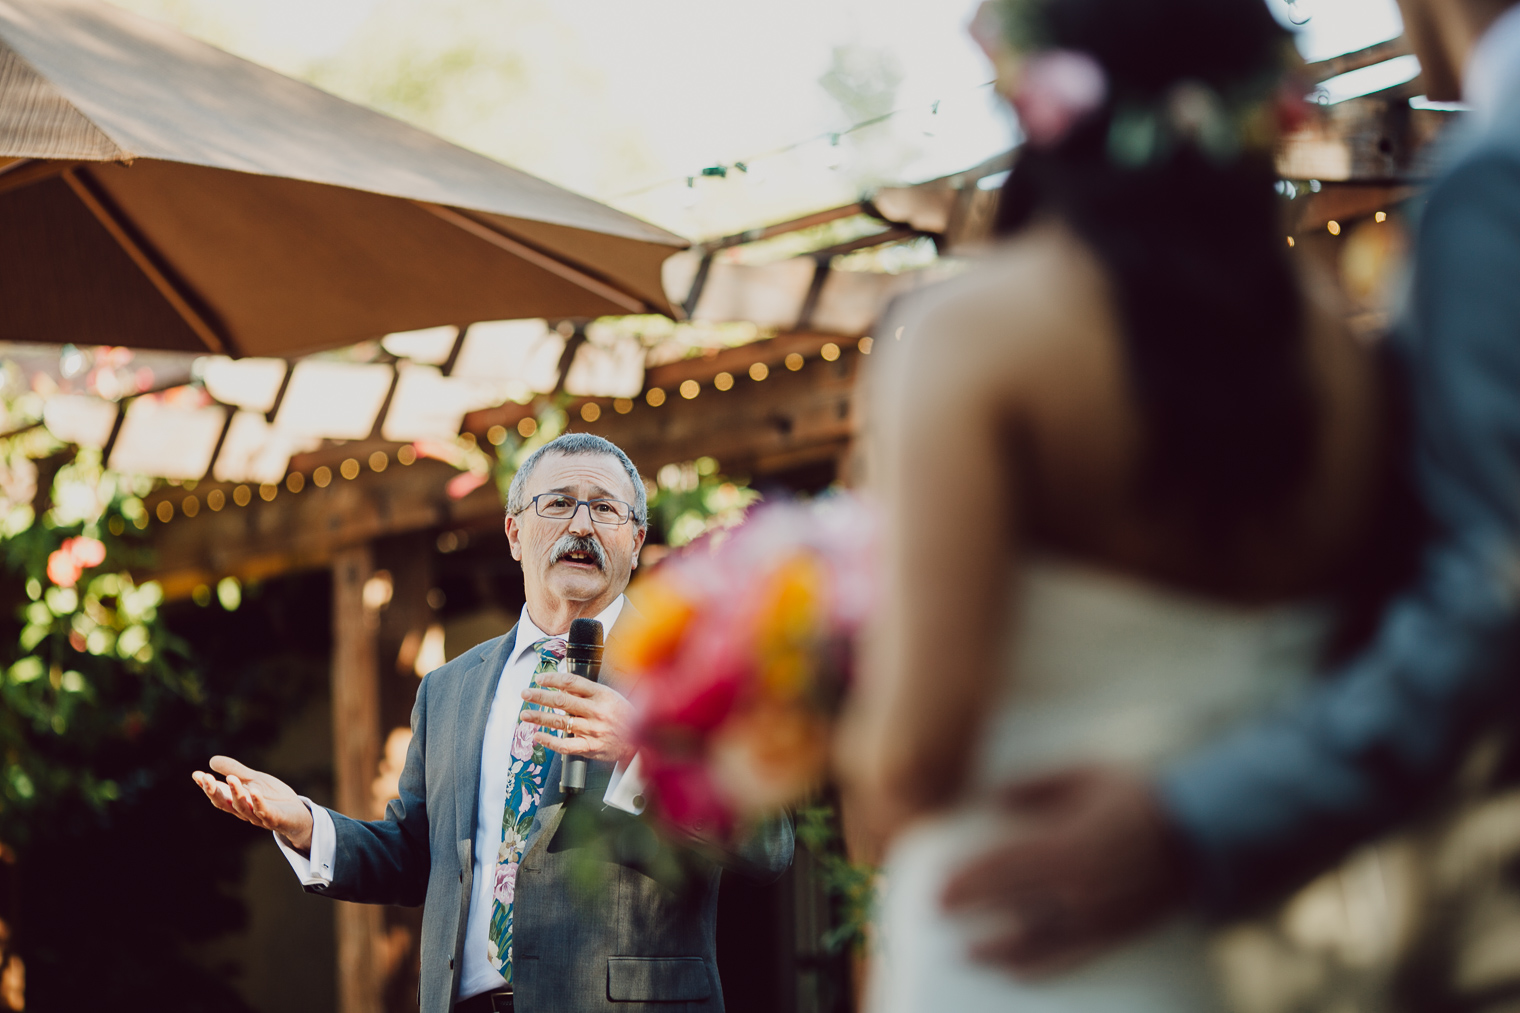 camp-kennolyn-wedding-photographer-94.jpg